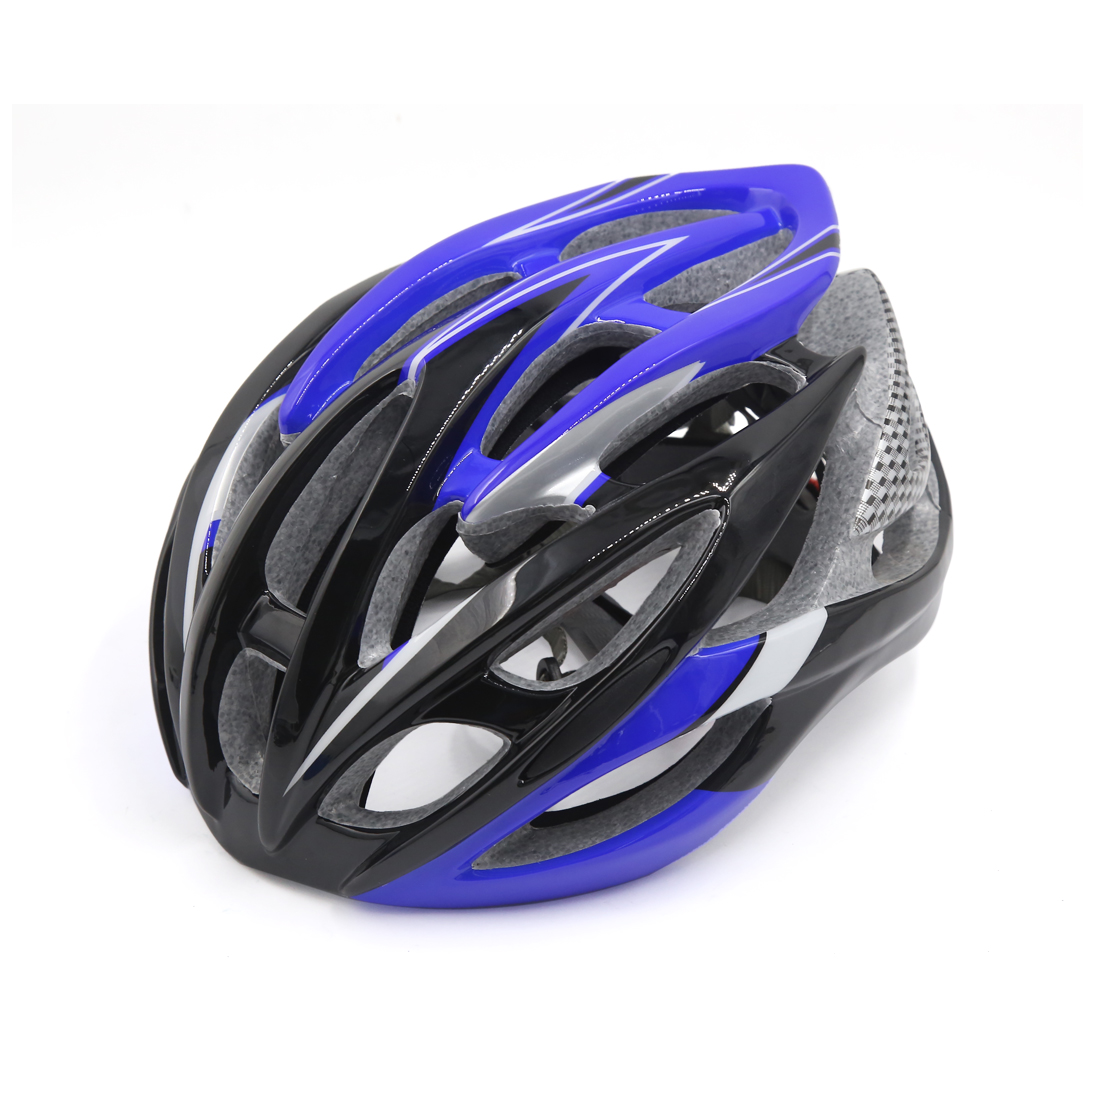 Blue Black 26 Vents EPS Adjusable Unisex Adult Helmet for Bike Bicycle Cycling